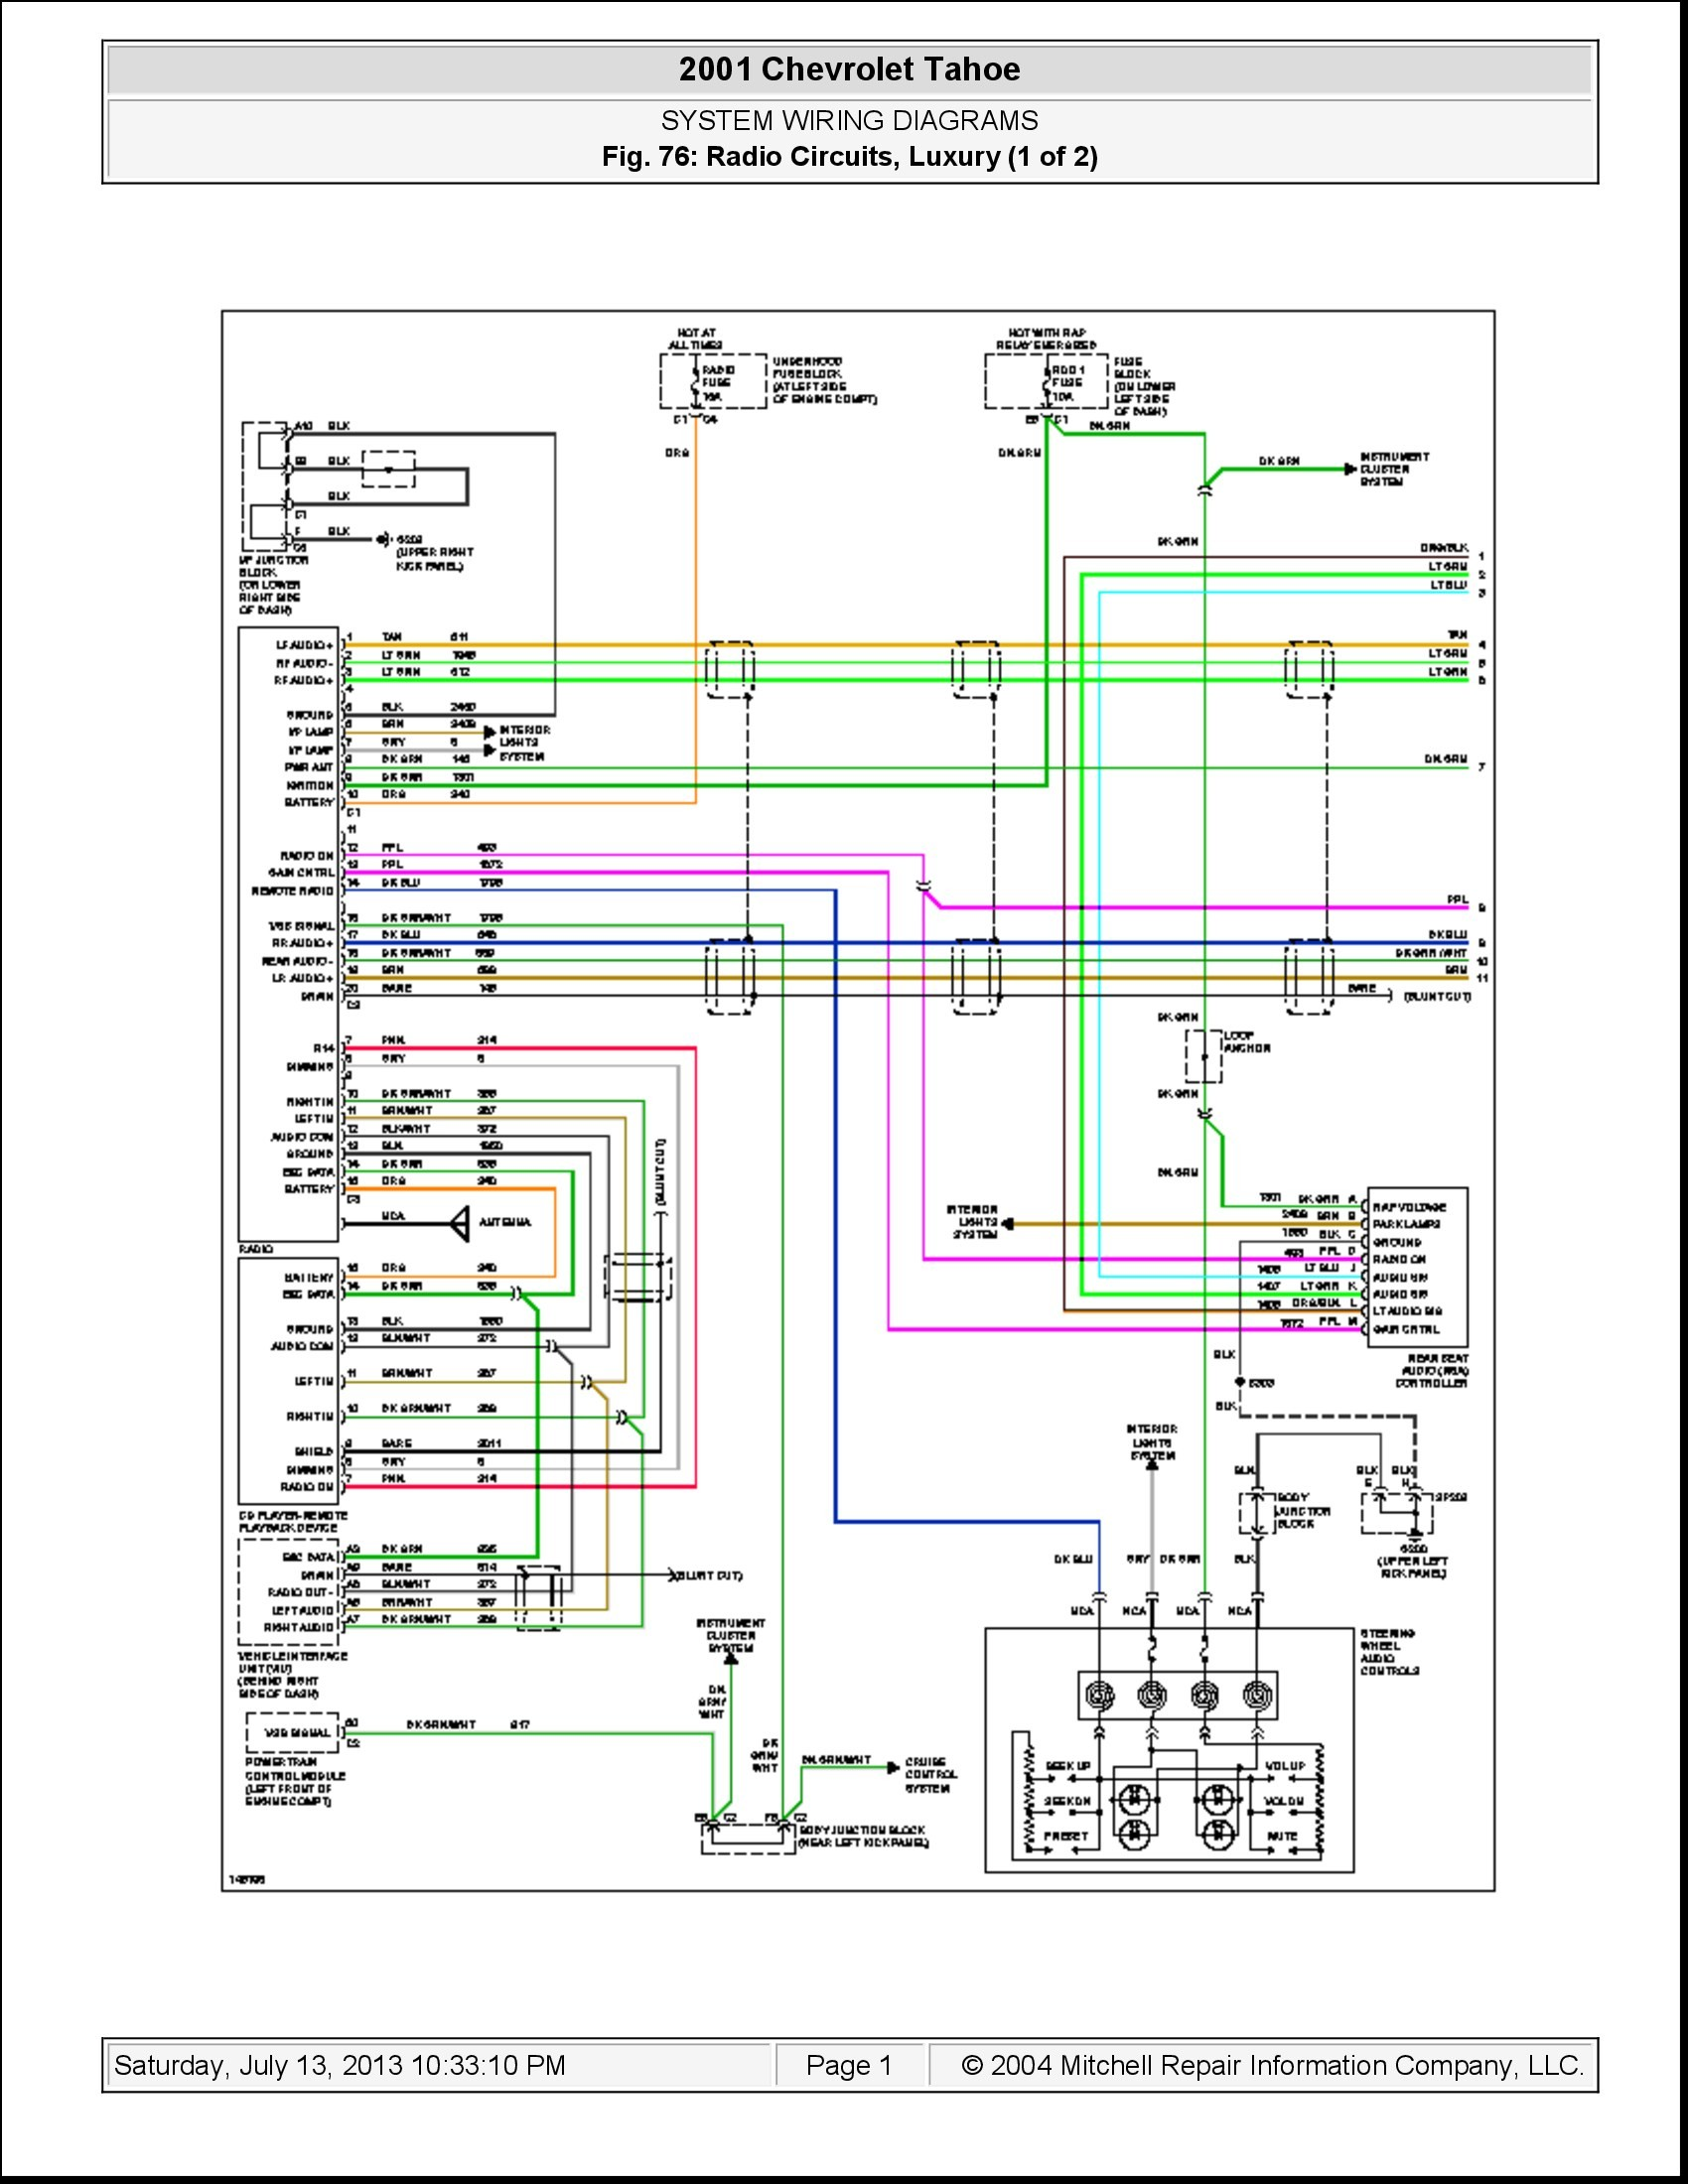 Gm Stereo Wiring Diagram : Chevy venture wiring diagram awesome gm radio